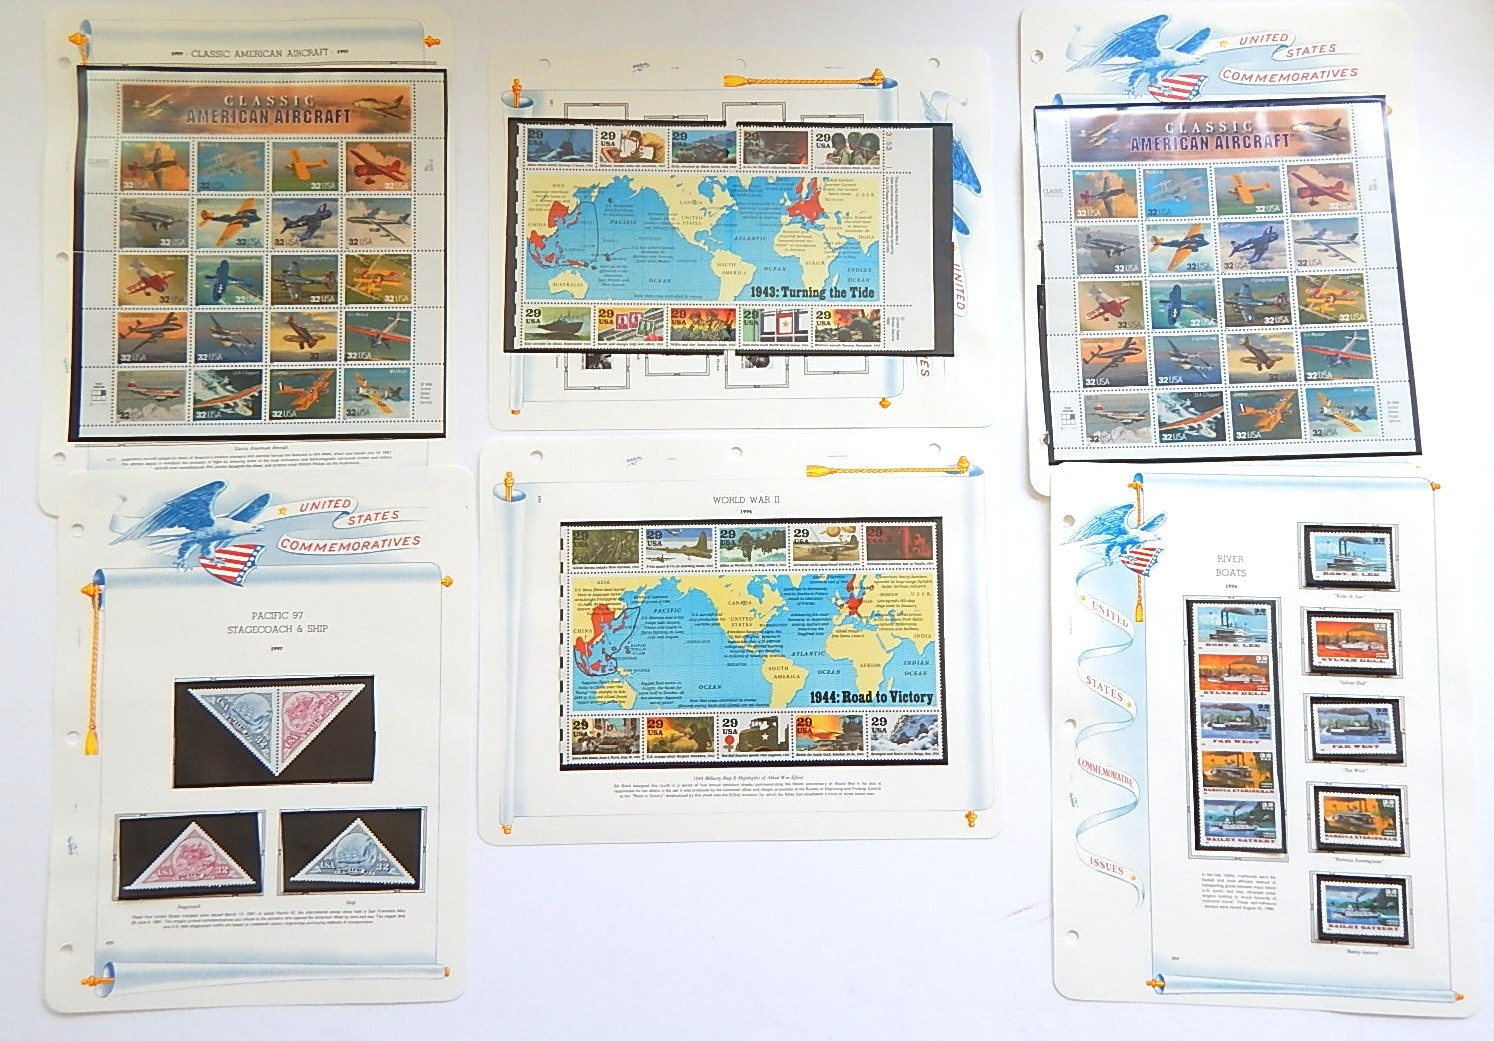 United States Commemorative Stamps with Aircrafts, River Boats, WWII, Ships